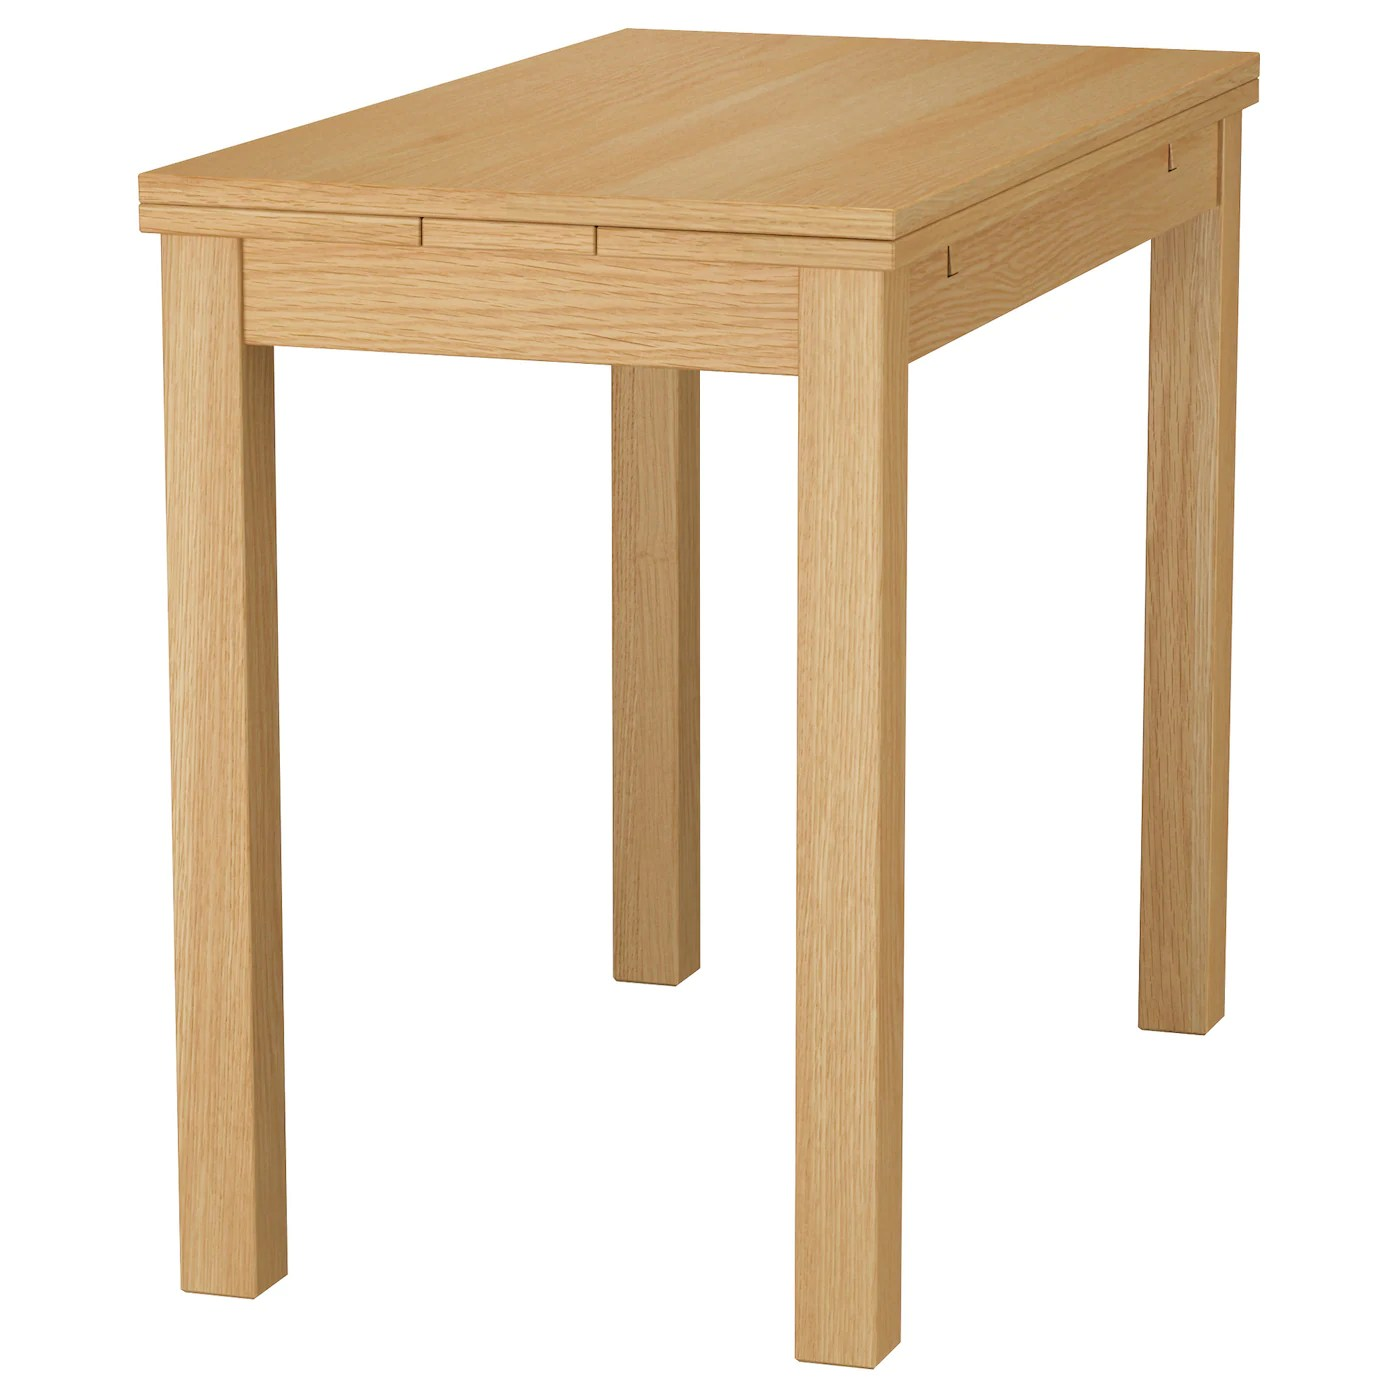 Ikea Table Dining Tables Kitchen Tables Dining Room Tables Ikea